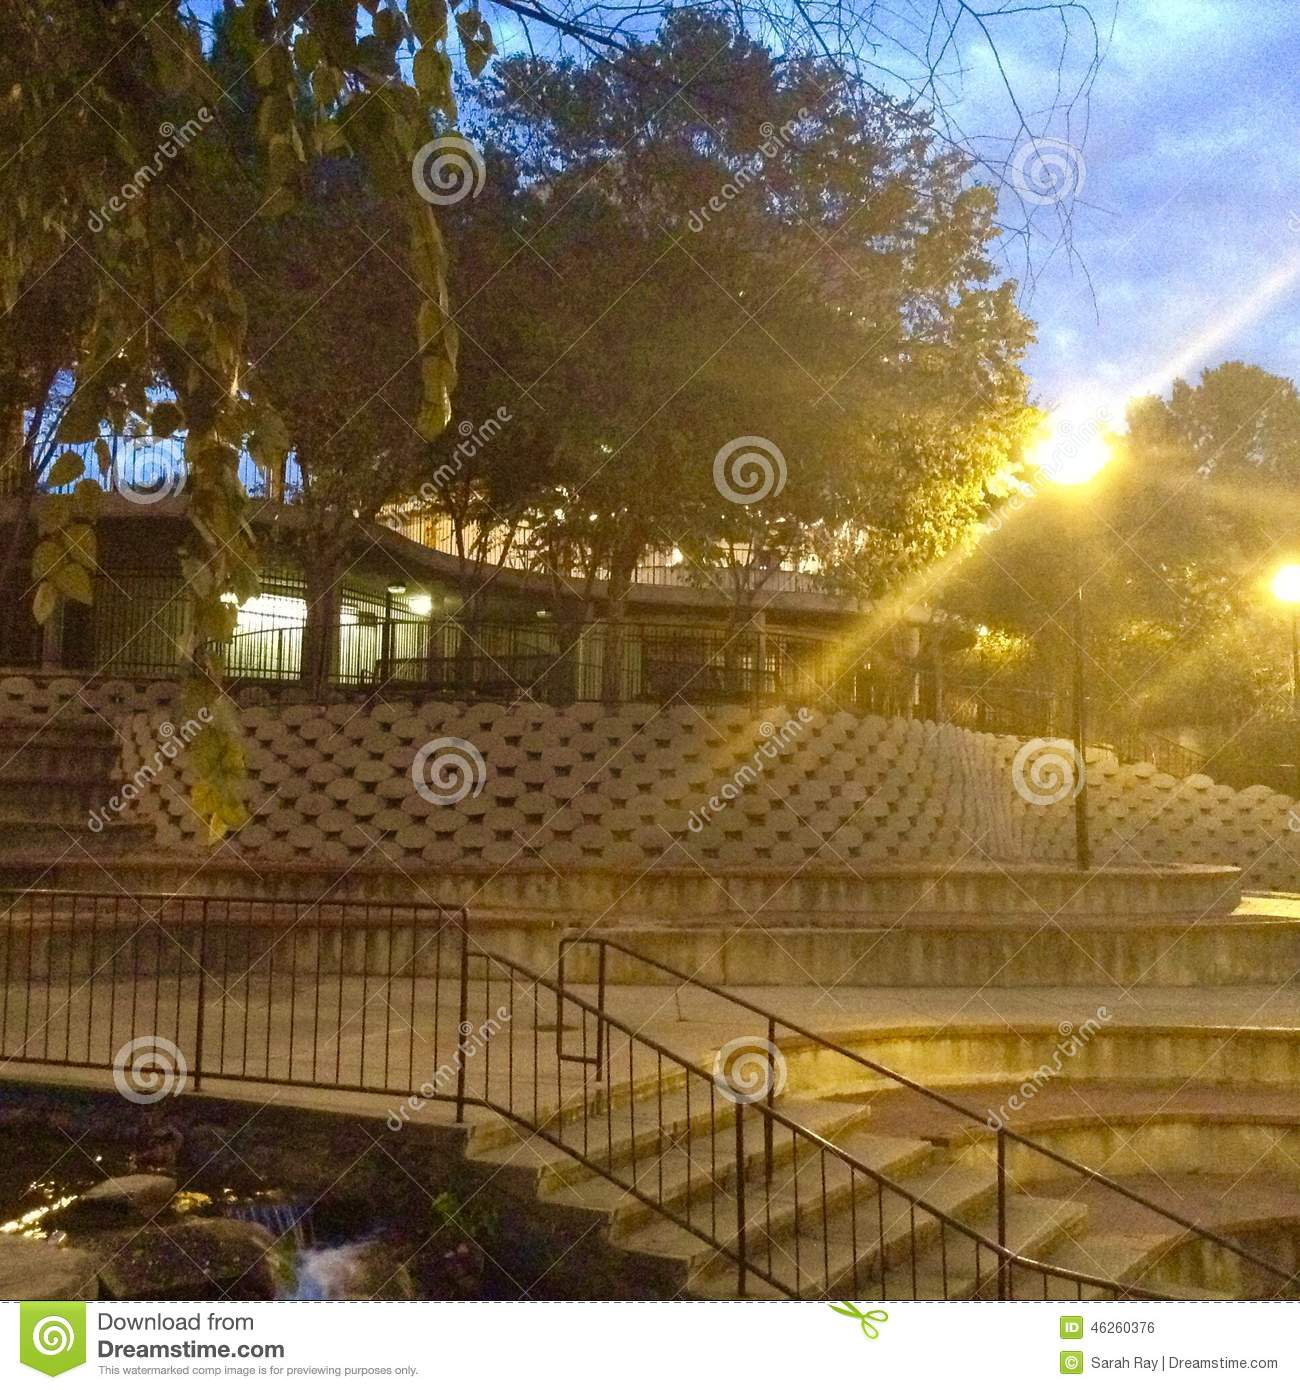 Finlay Park, Twilight at the Cafe